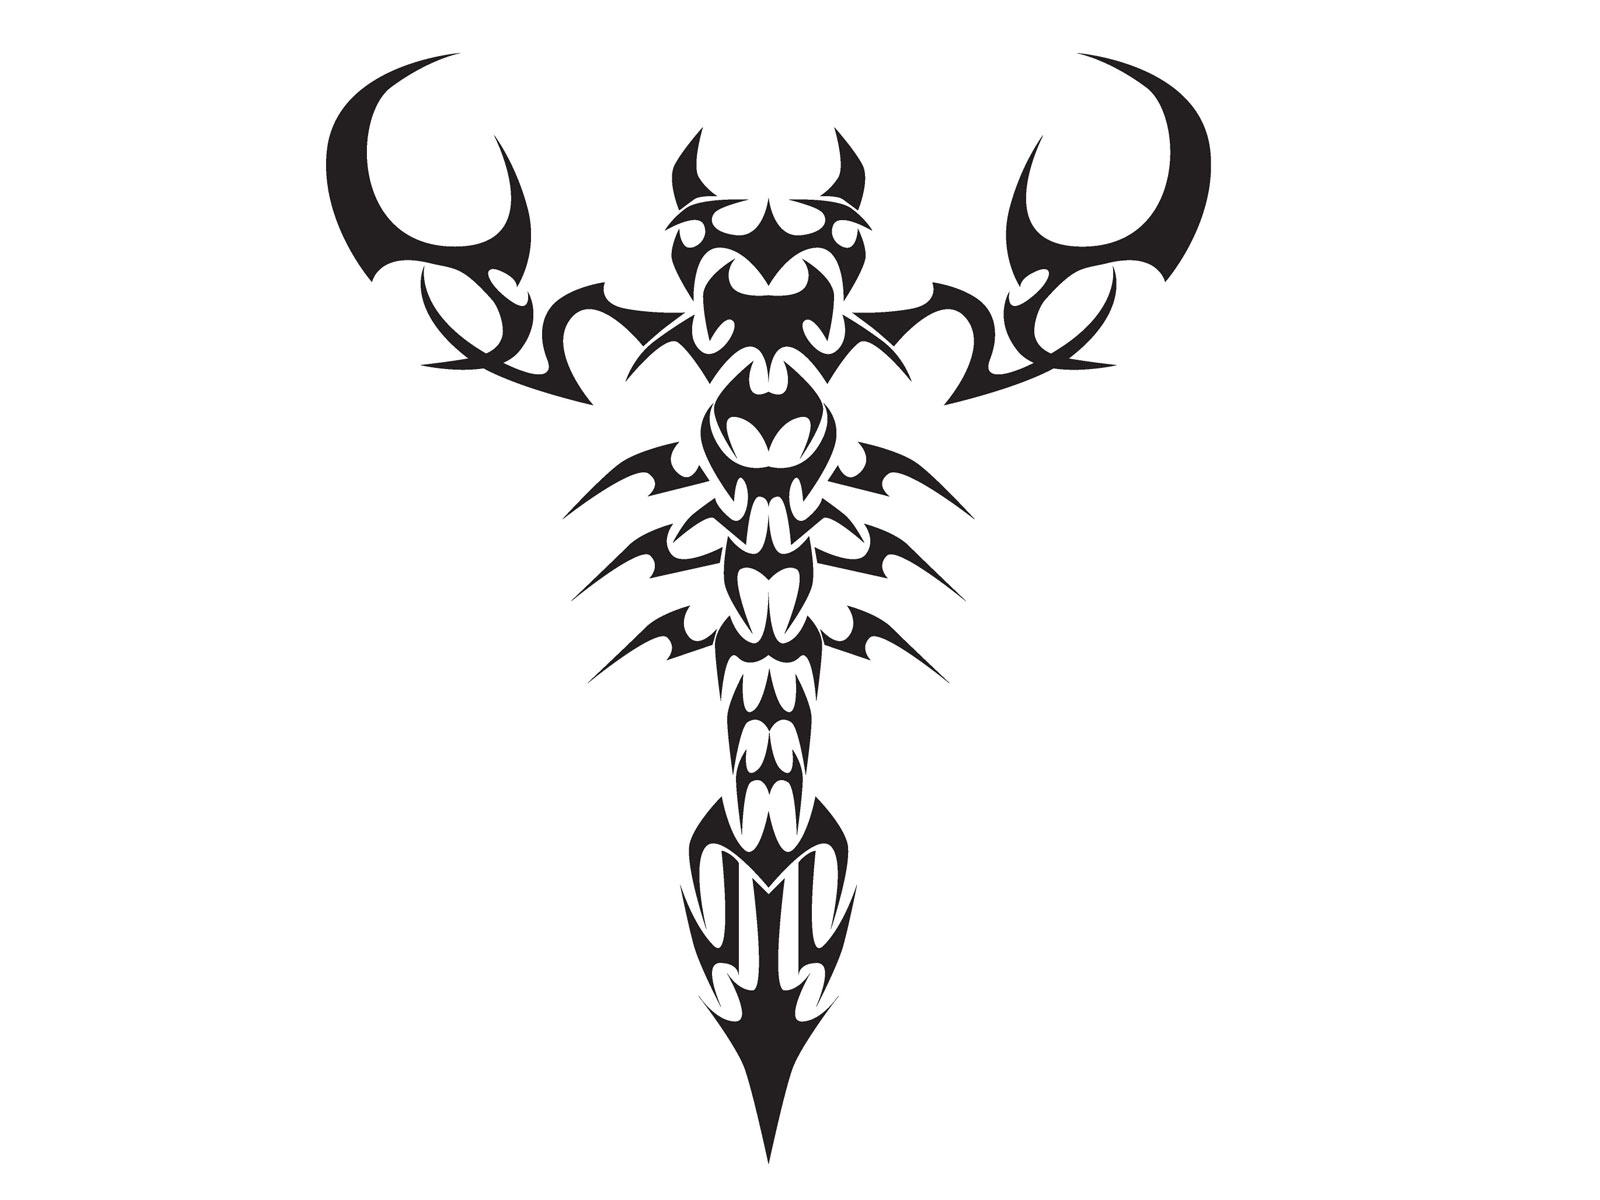 Tribal-Tattoos Zodiac-Scorpio-Tattoo-Design